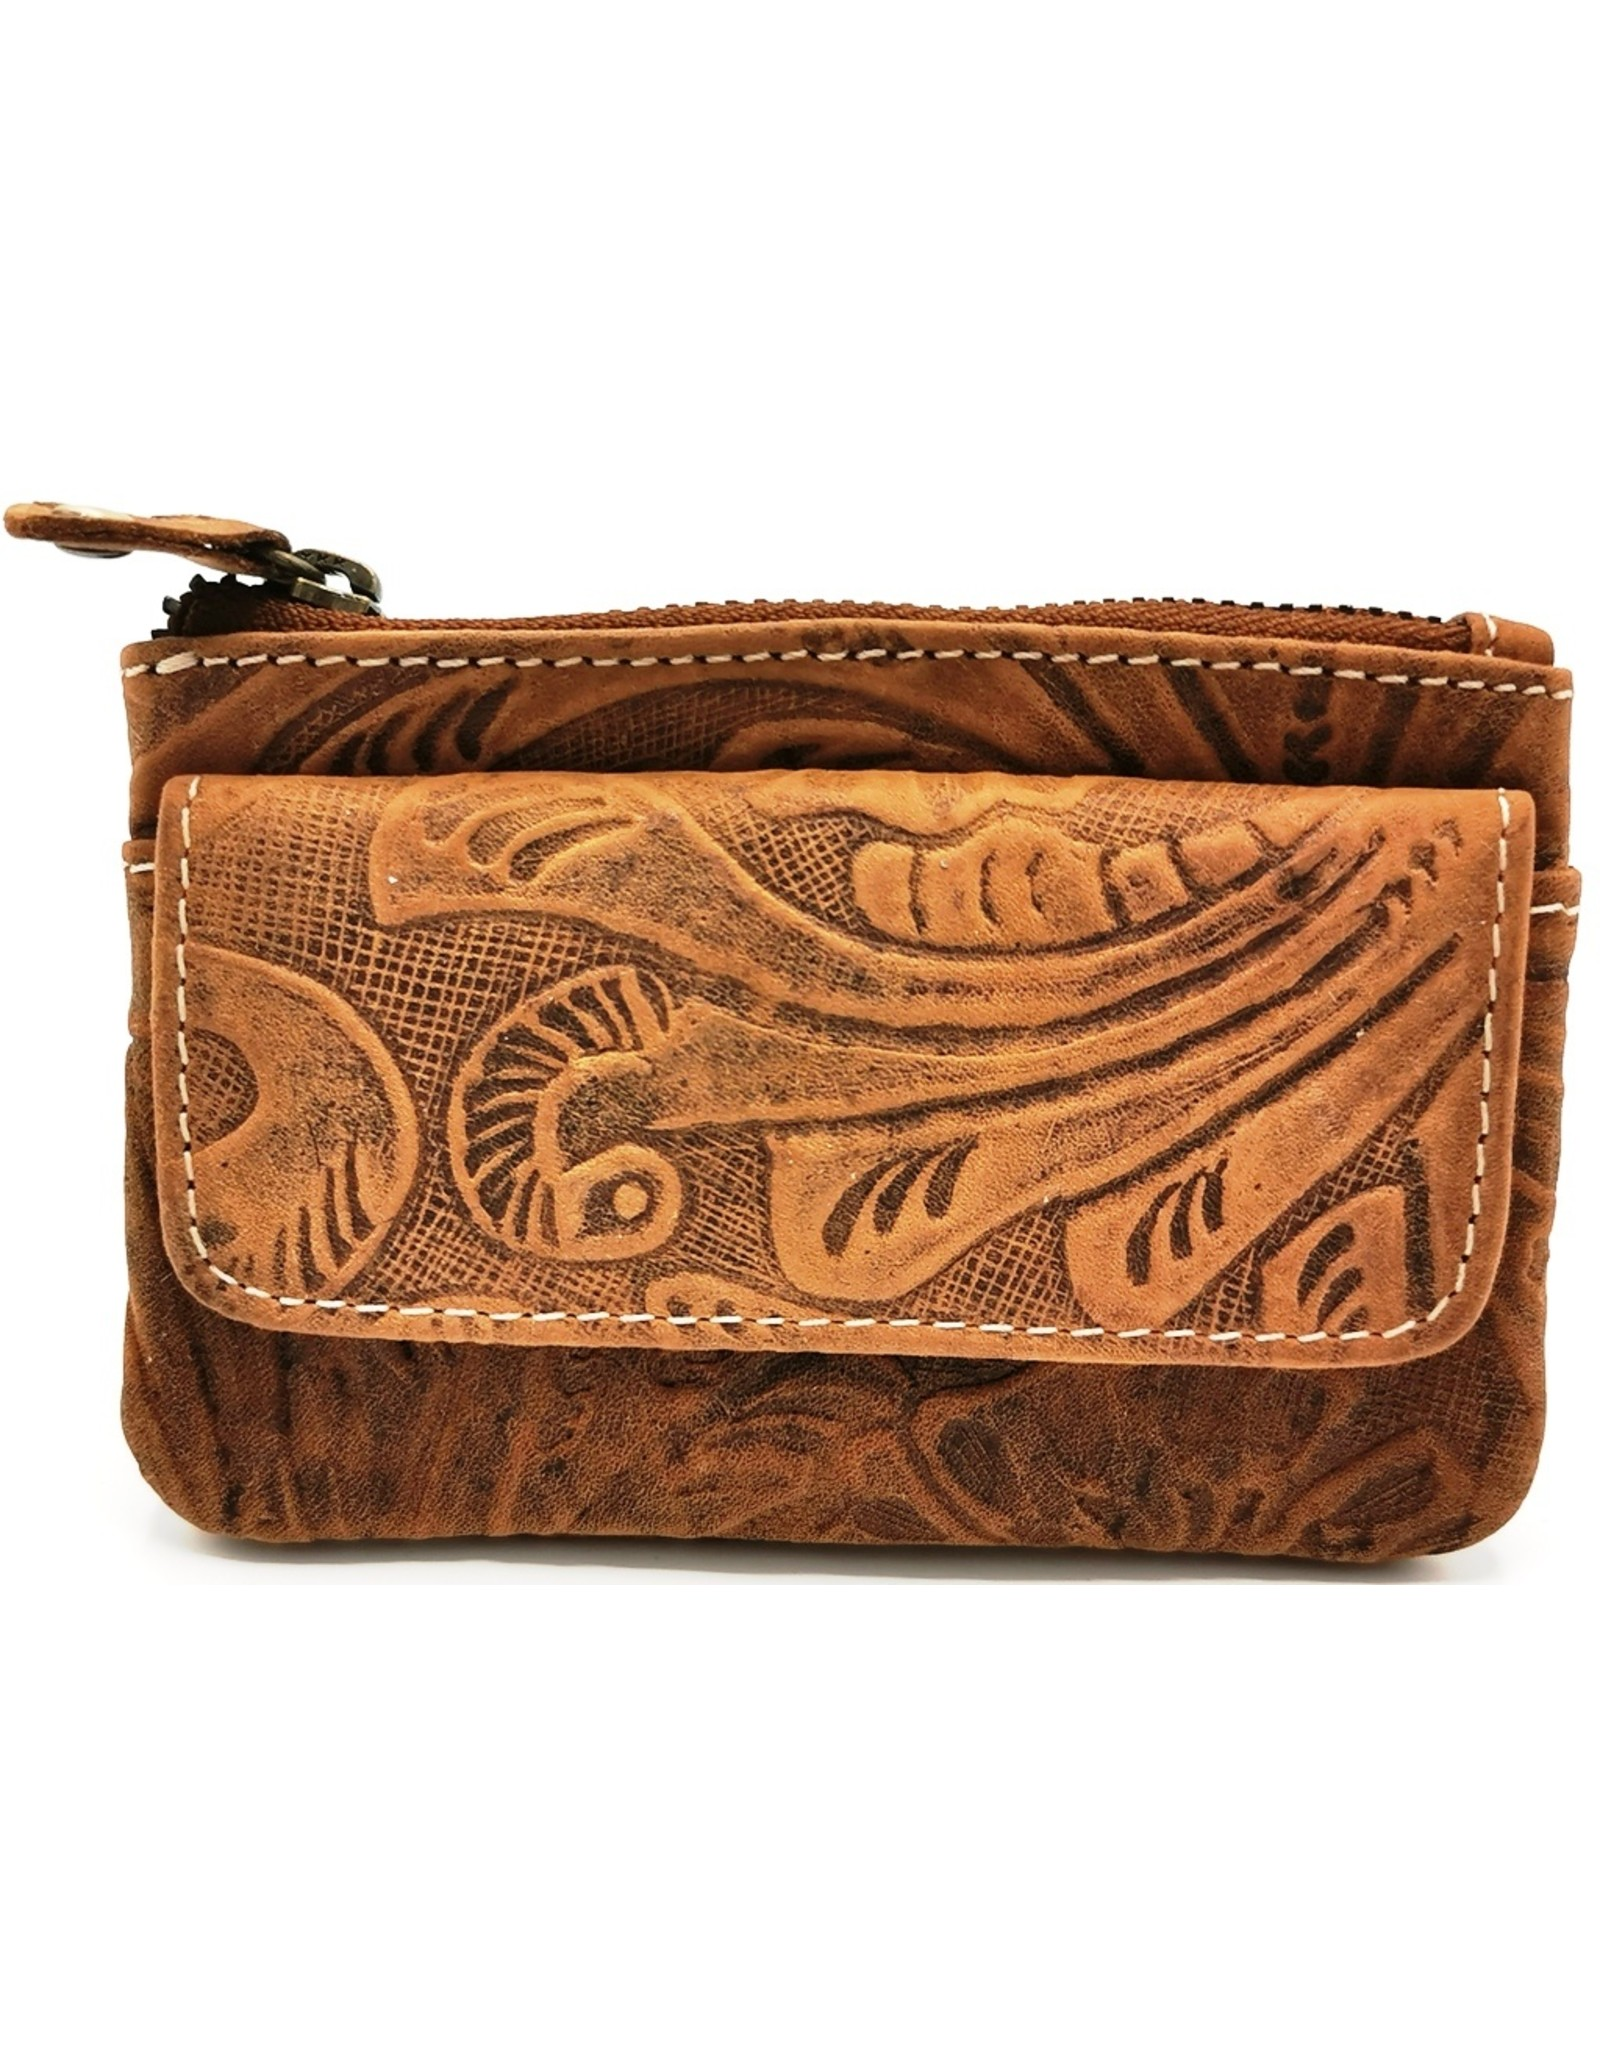 HillBurry Leather Wallets -  Leather key case with embossed flowers (tan)